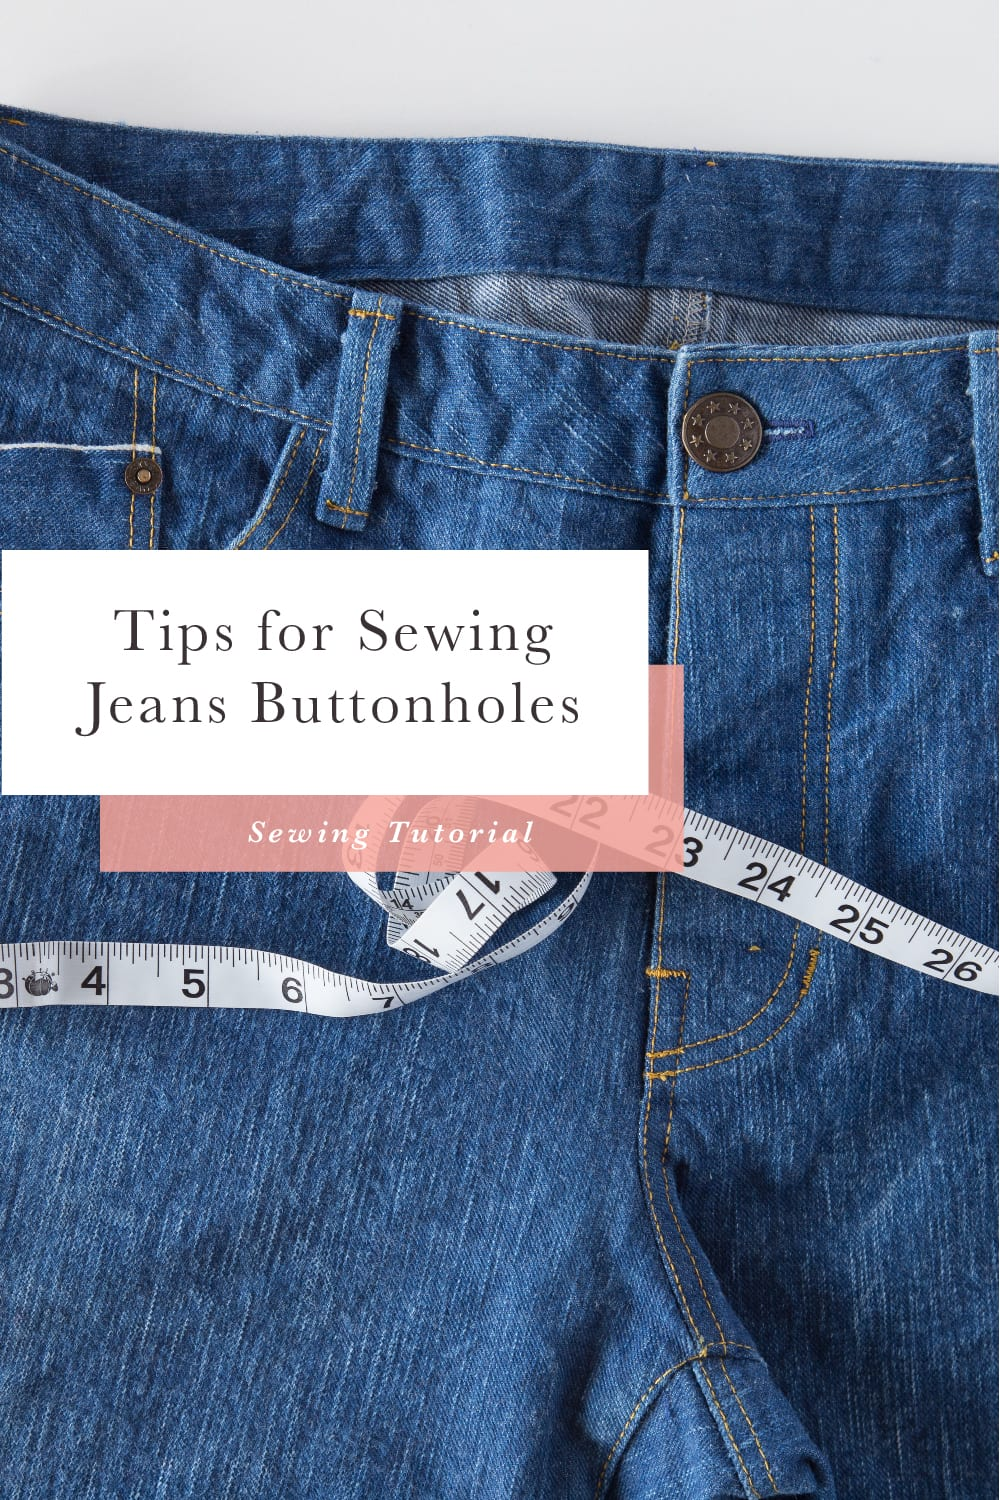 Tips for sewing jeans buttonholes // tutorial by Closet Case Patterns